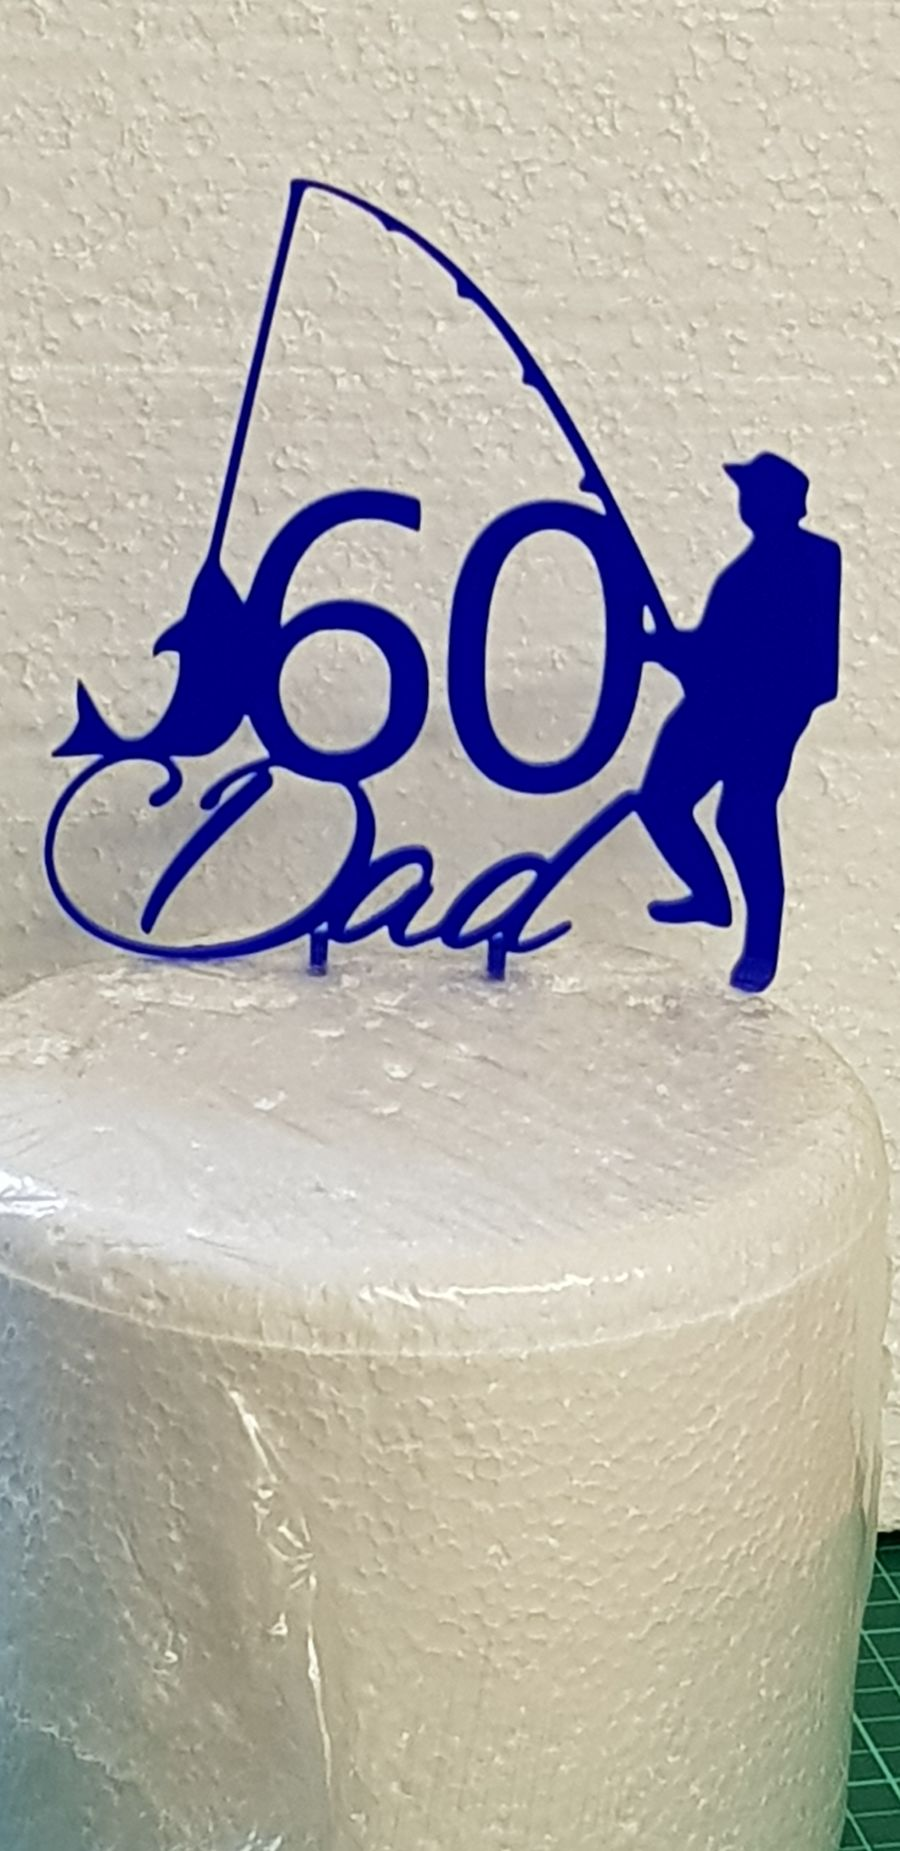 Caught a Fish with name and age acrylic cake topper